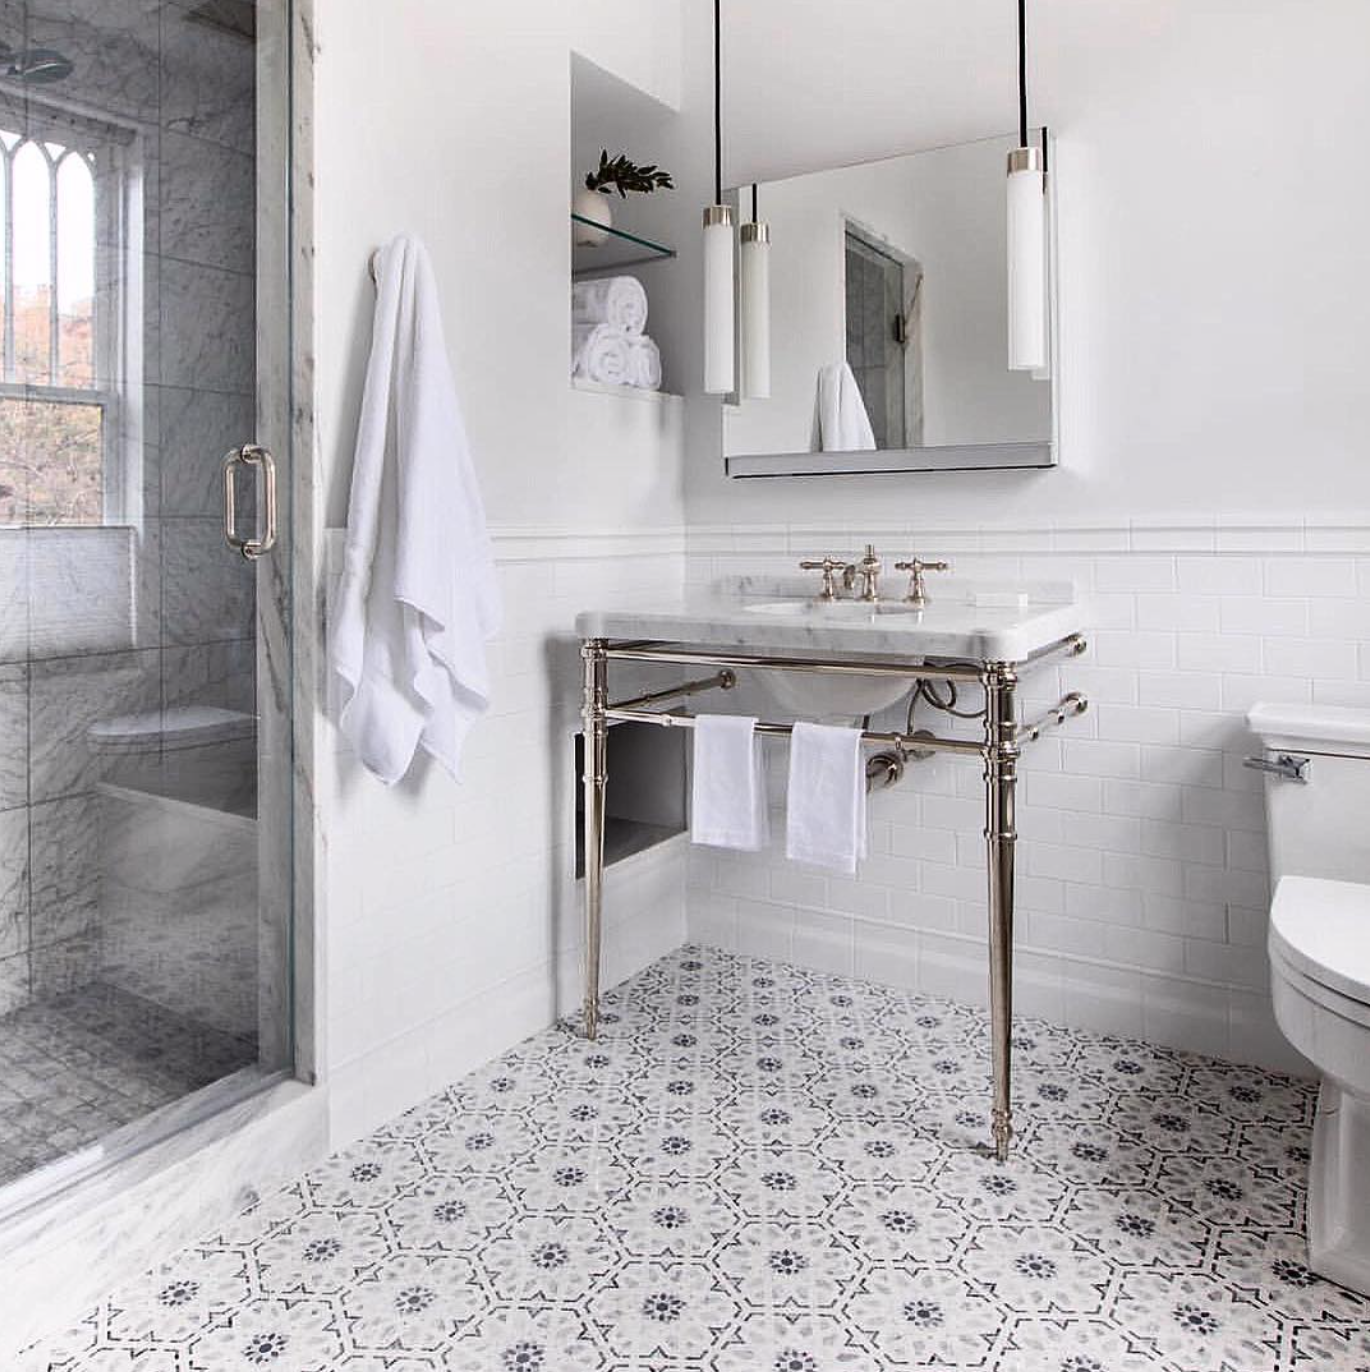 Traditional meets modern in this classic bath by  @reid_havenbuilders . The Uplift lighting and cabinetry is paired with the Inigo collection by  @kallistaplumbing .